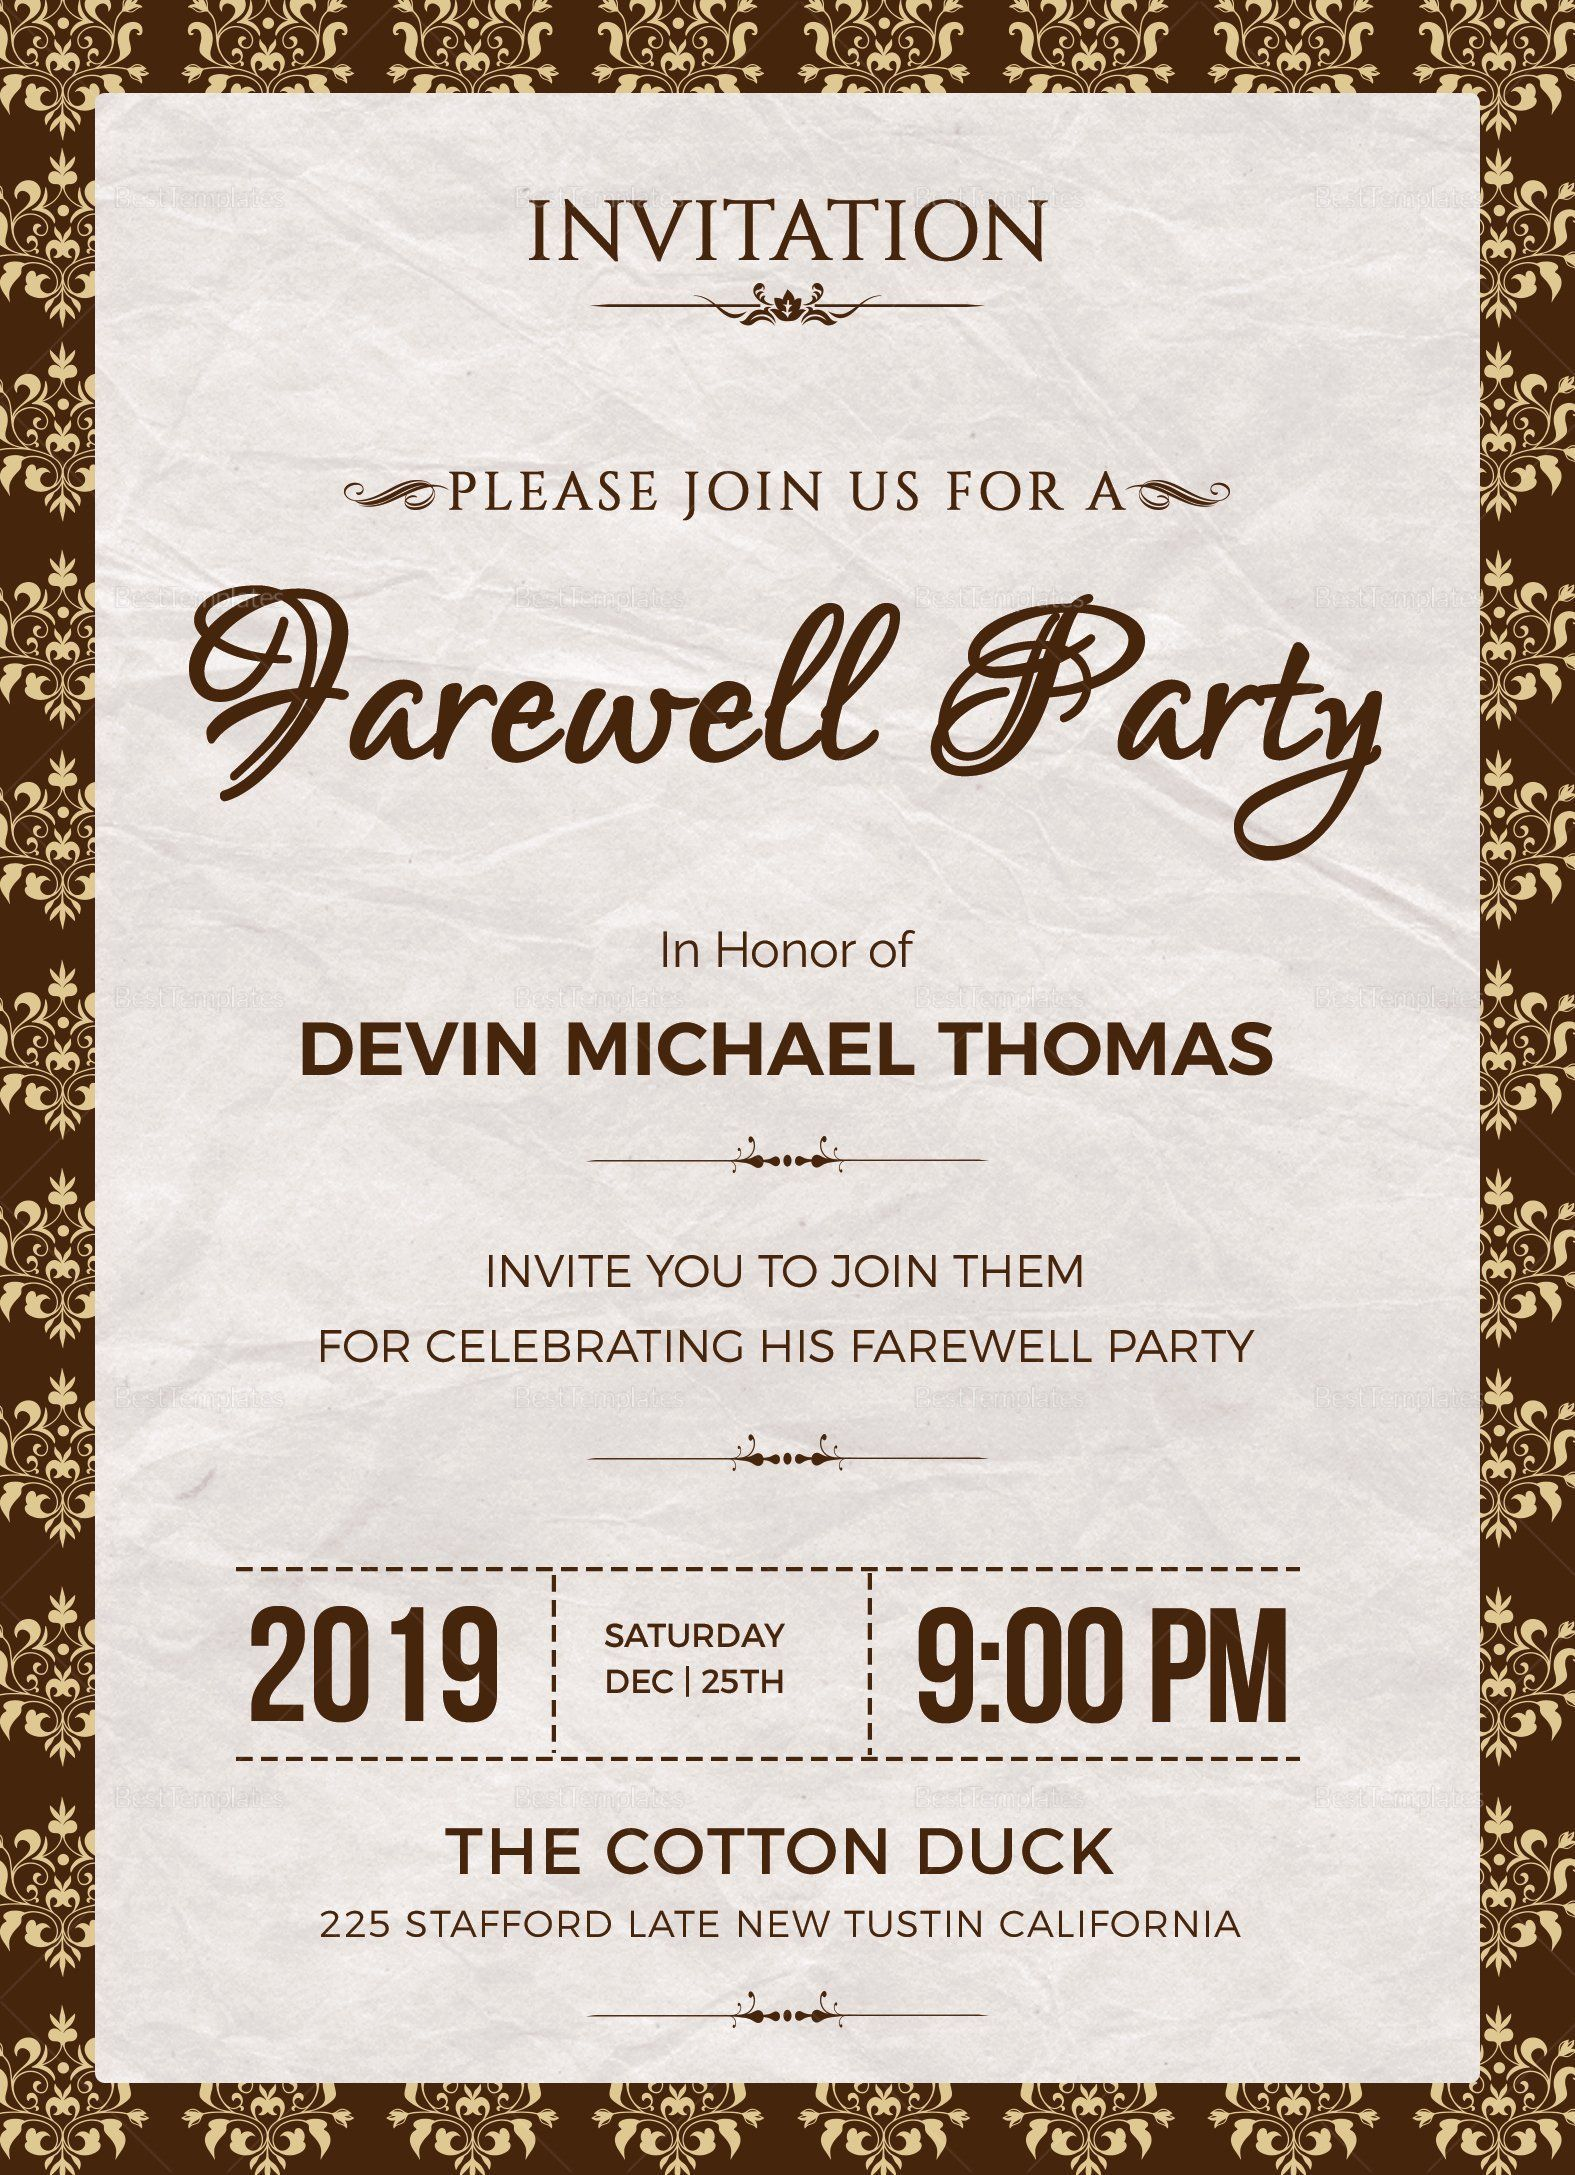 003 Exceptional Farewell Party Invitation Template Free High Definition  Email Printable WordFull